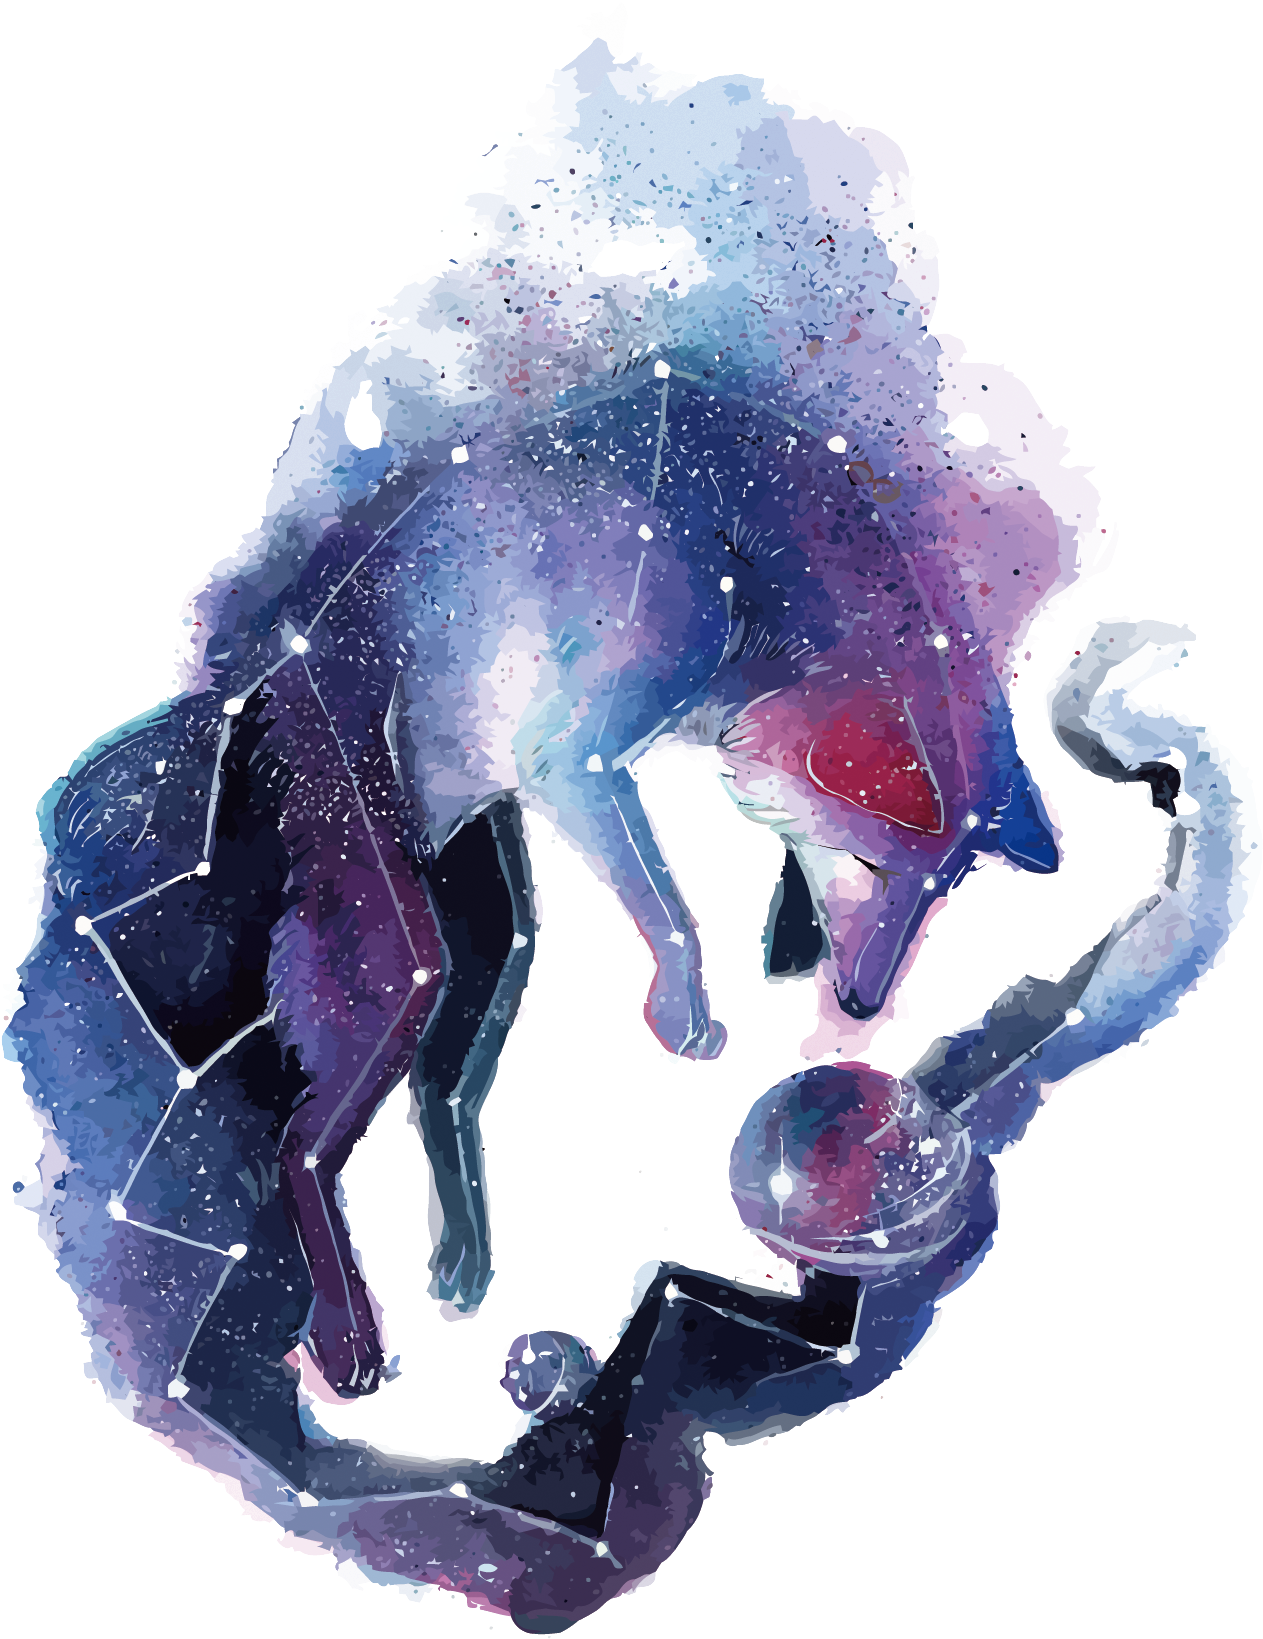 Download Arctic Fox Red Fox Gray Wolf Deer - Galaxy Fox PNG Image with No  Background - PNGkey.com